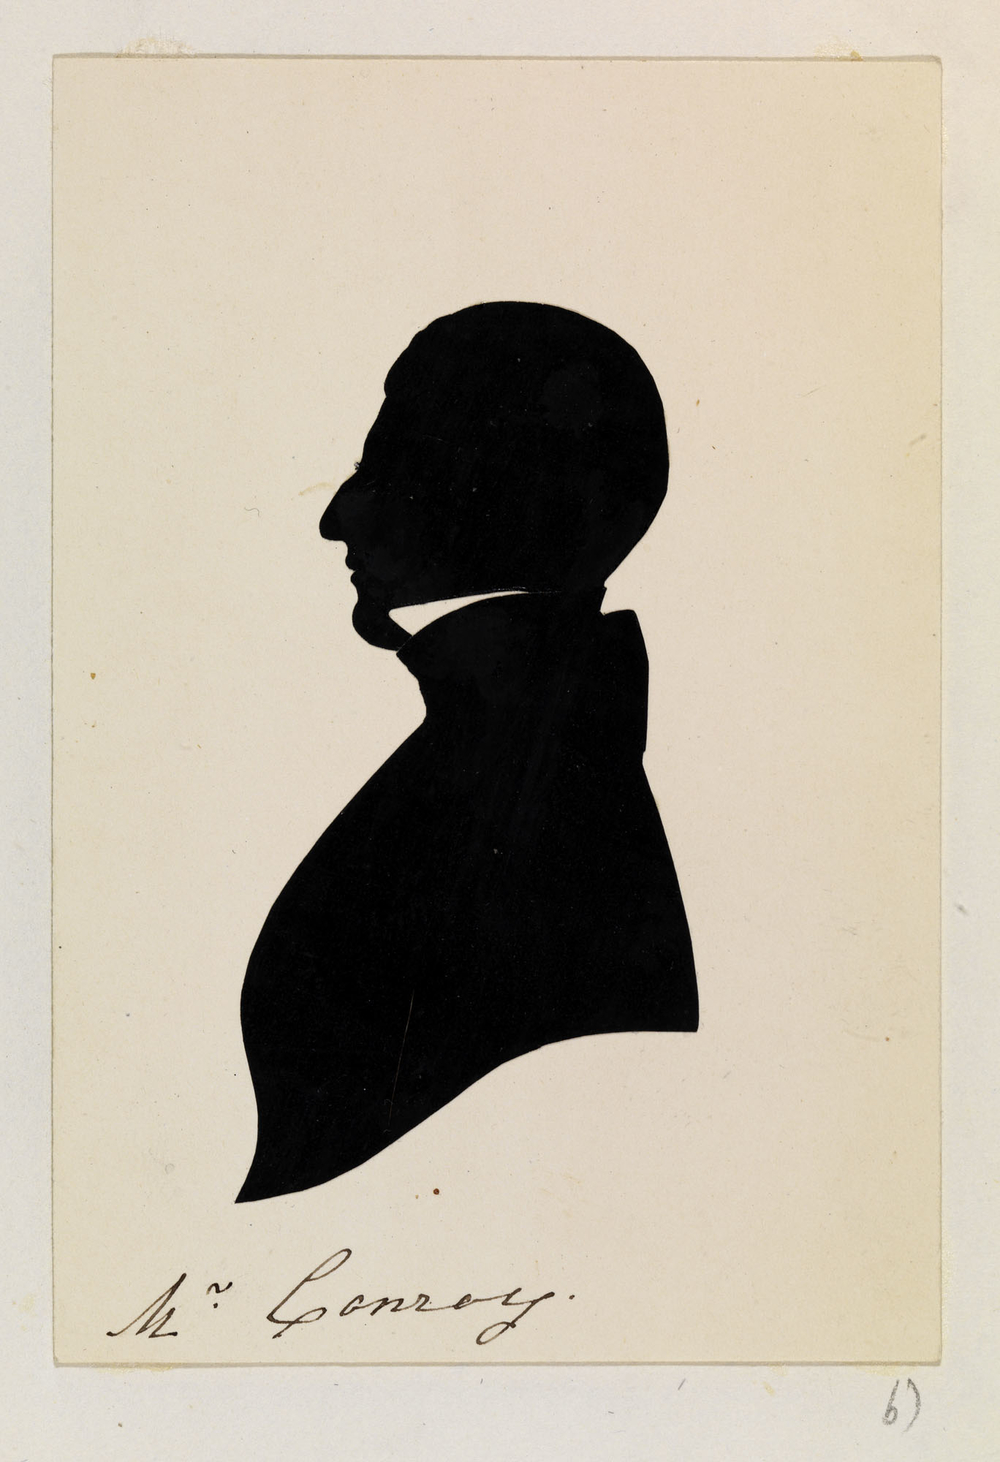 A silhouette showing a portrait of Edward Conroy. He is shown bust-length and facing left in profile. He is wearing nineteenth-century-style dress with a cut-out section depicting the collar of his shirt. Inscribed below: Mr Conroy. 